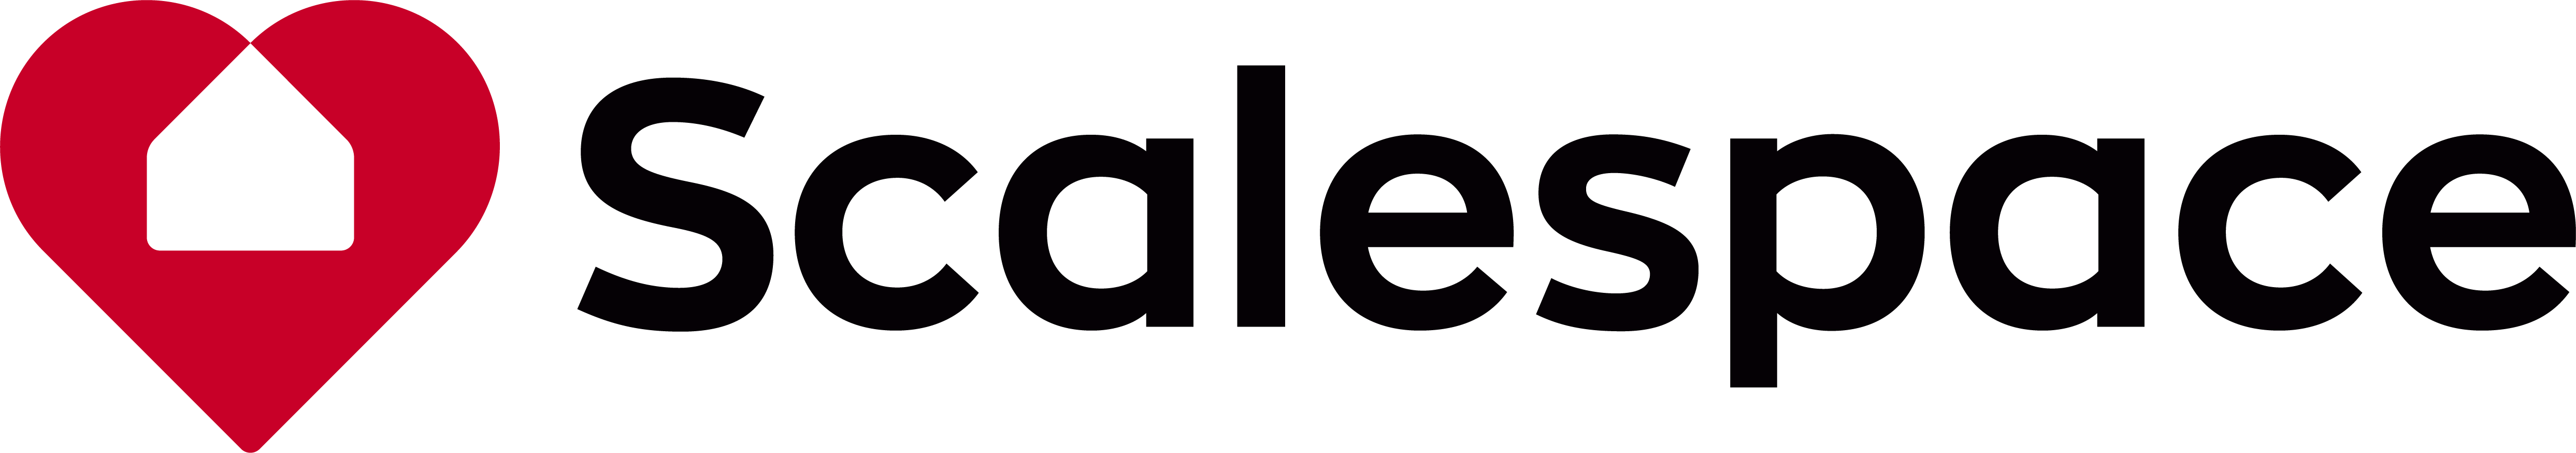 Scalespace Realty logo